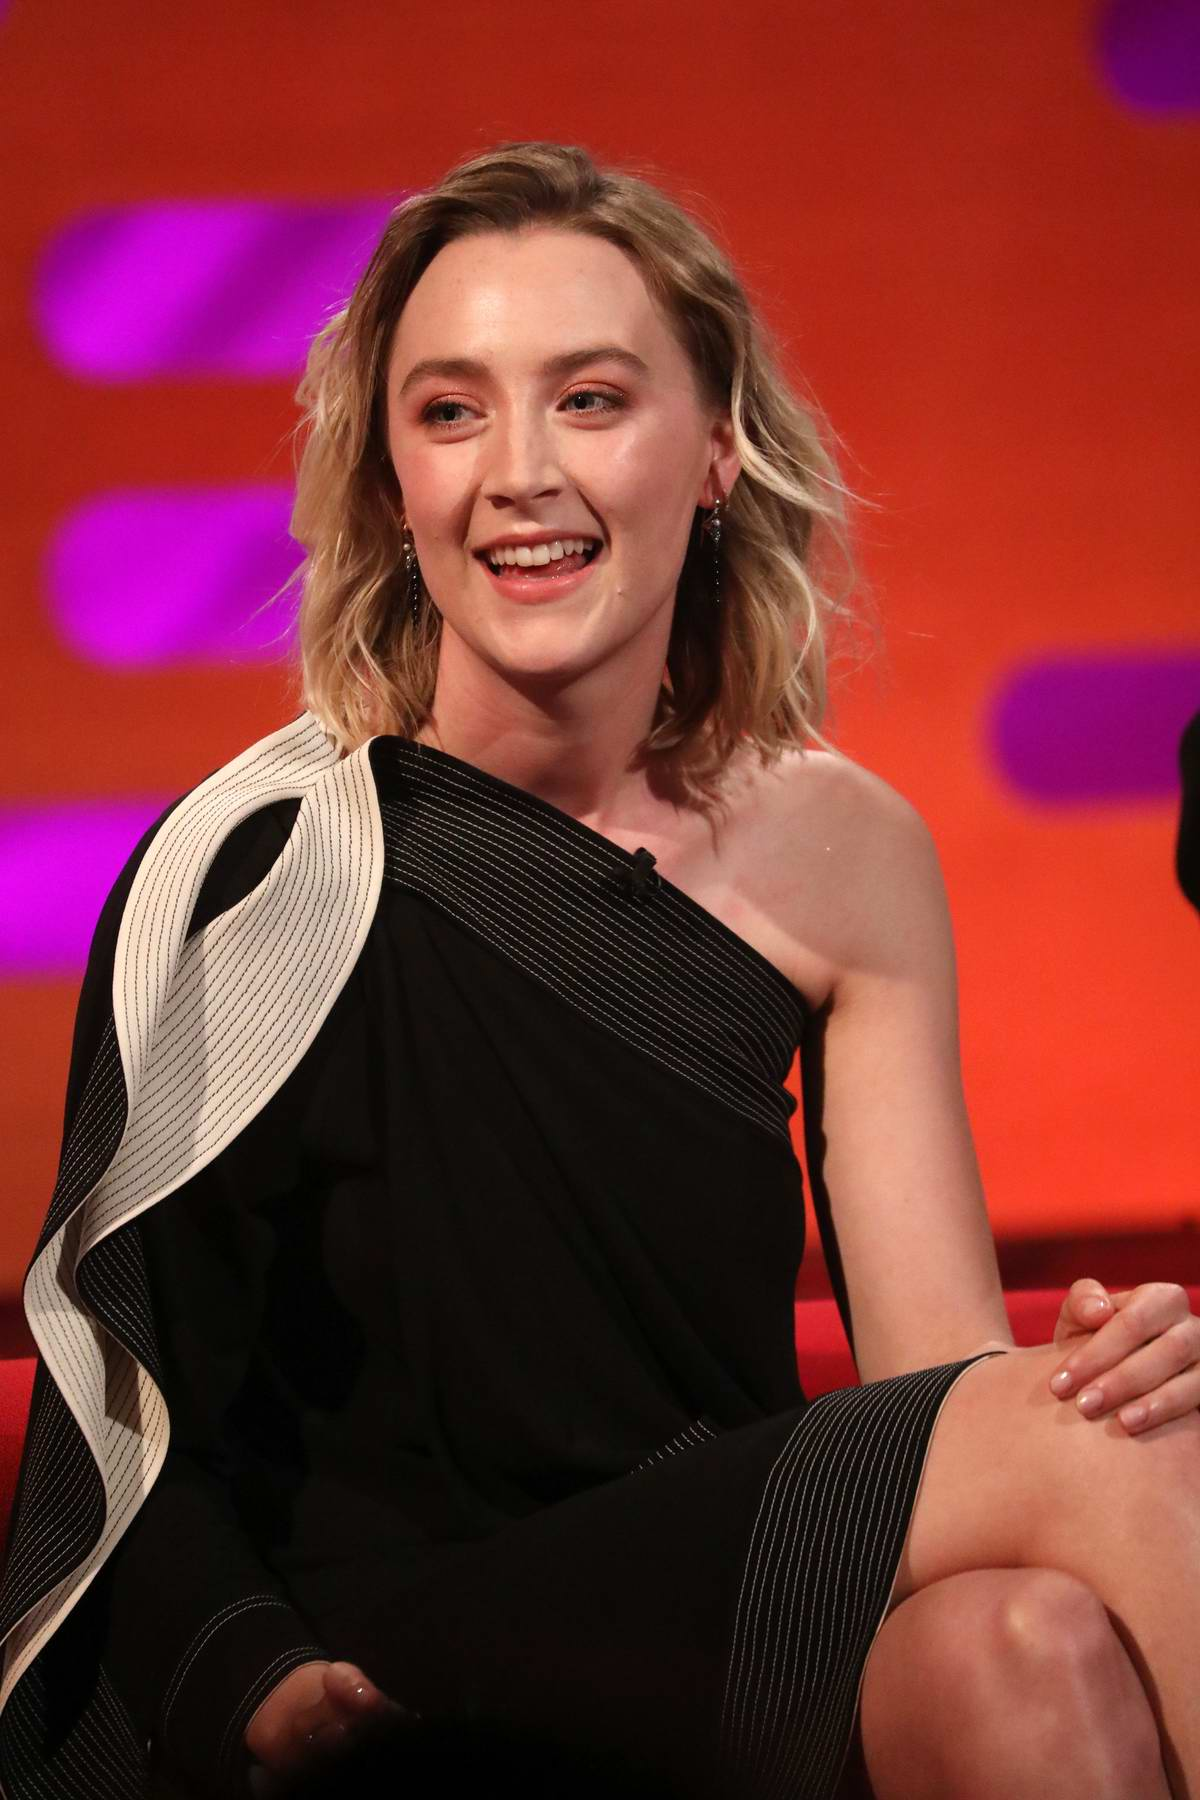 Saoirse Ronan makes an appearance on The Graham Norton Show in London, UK